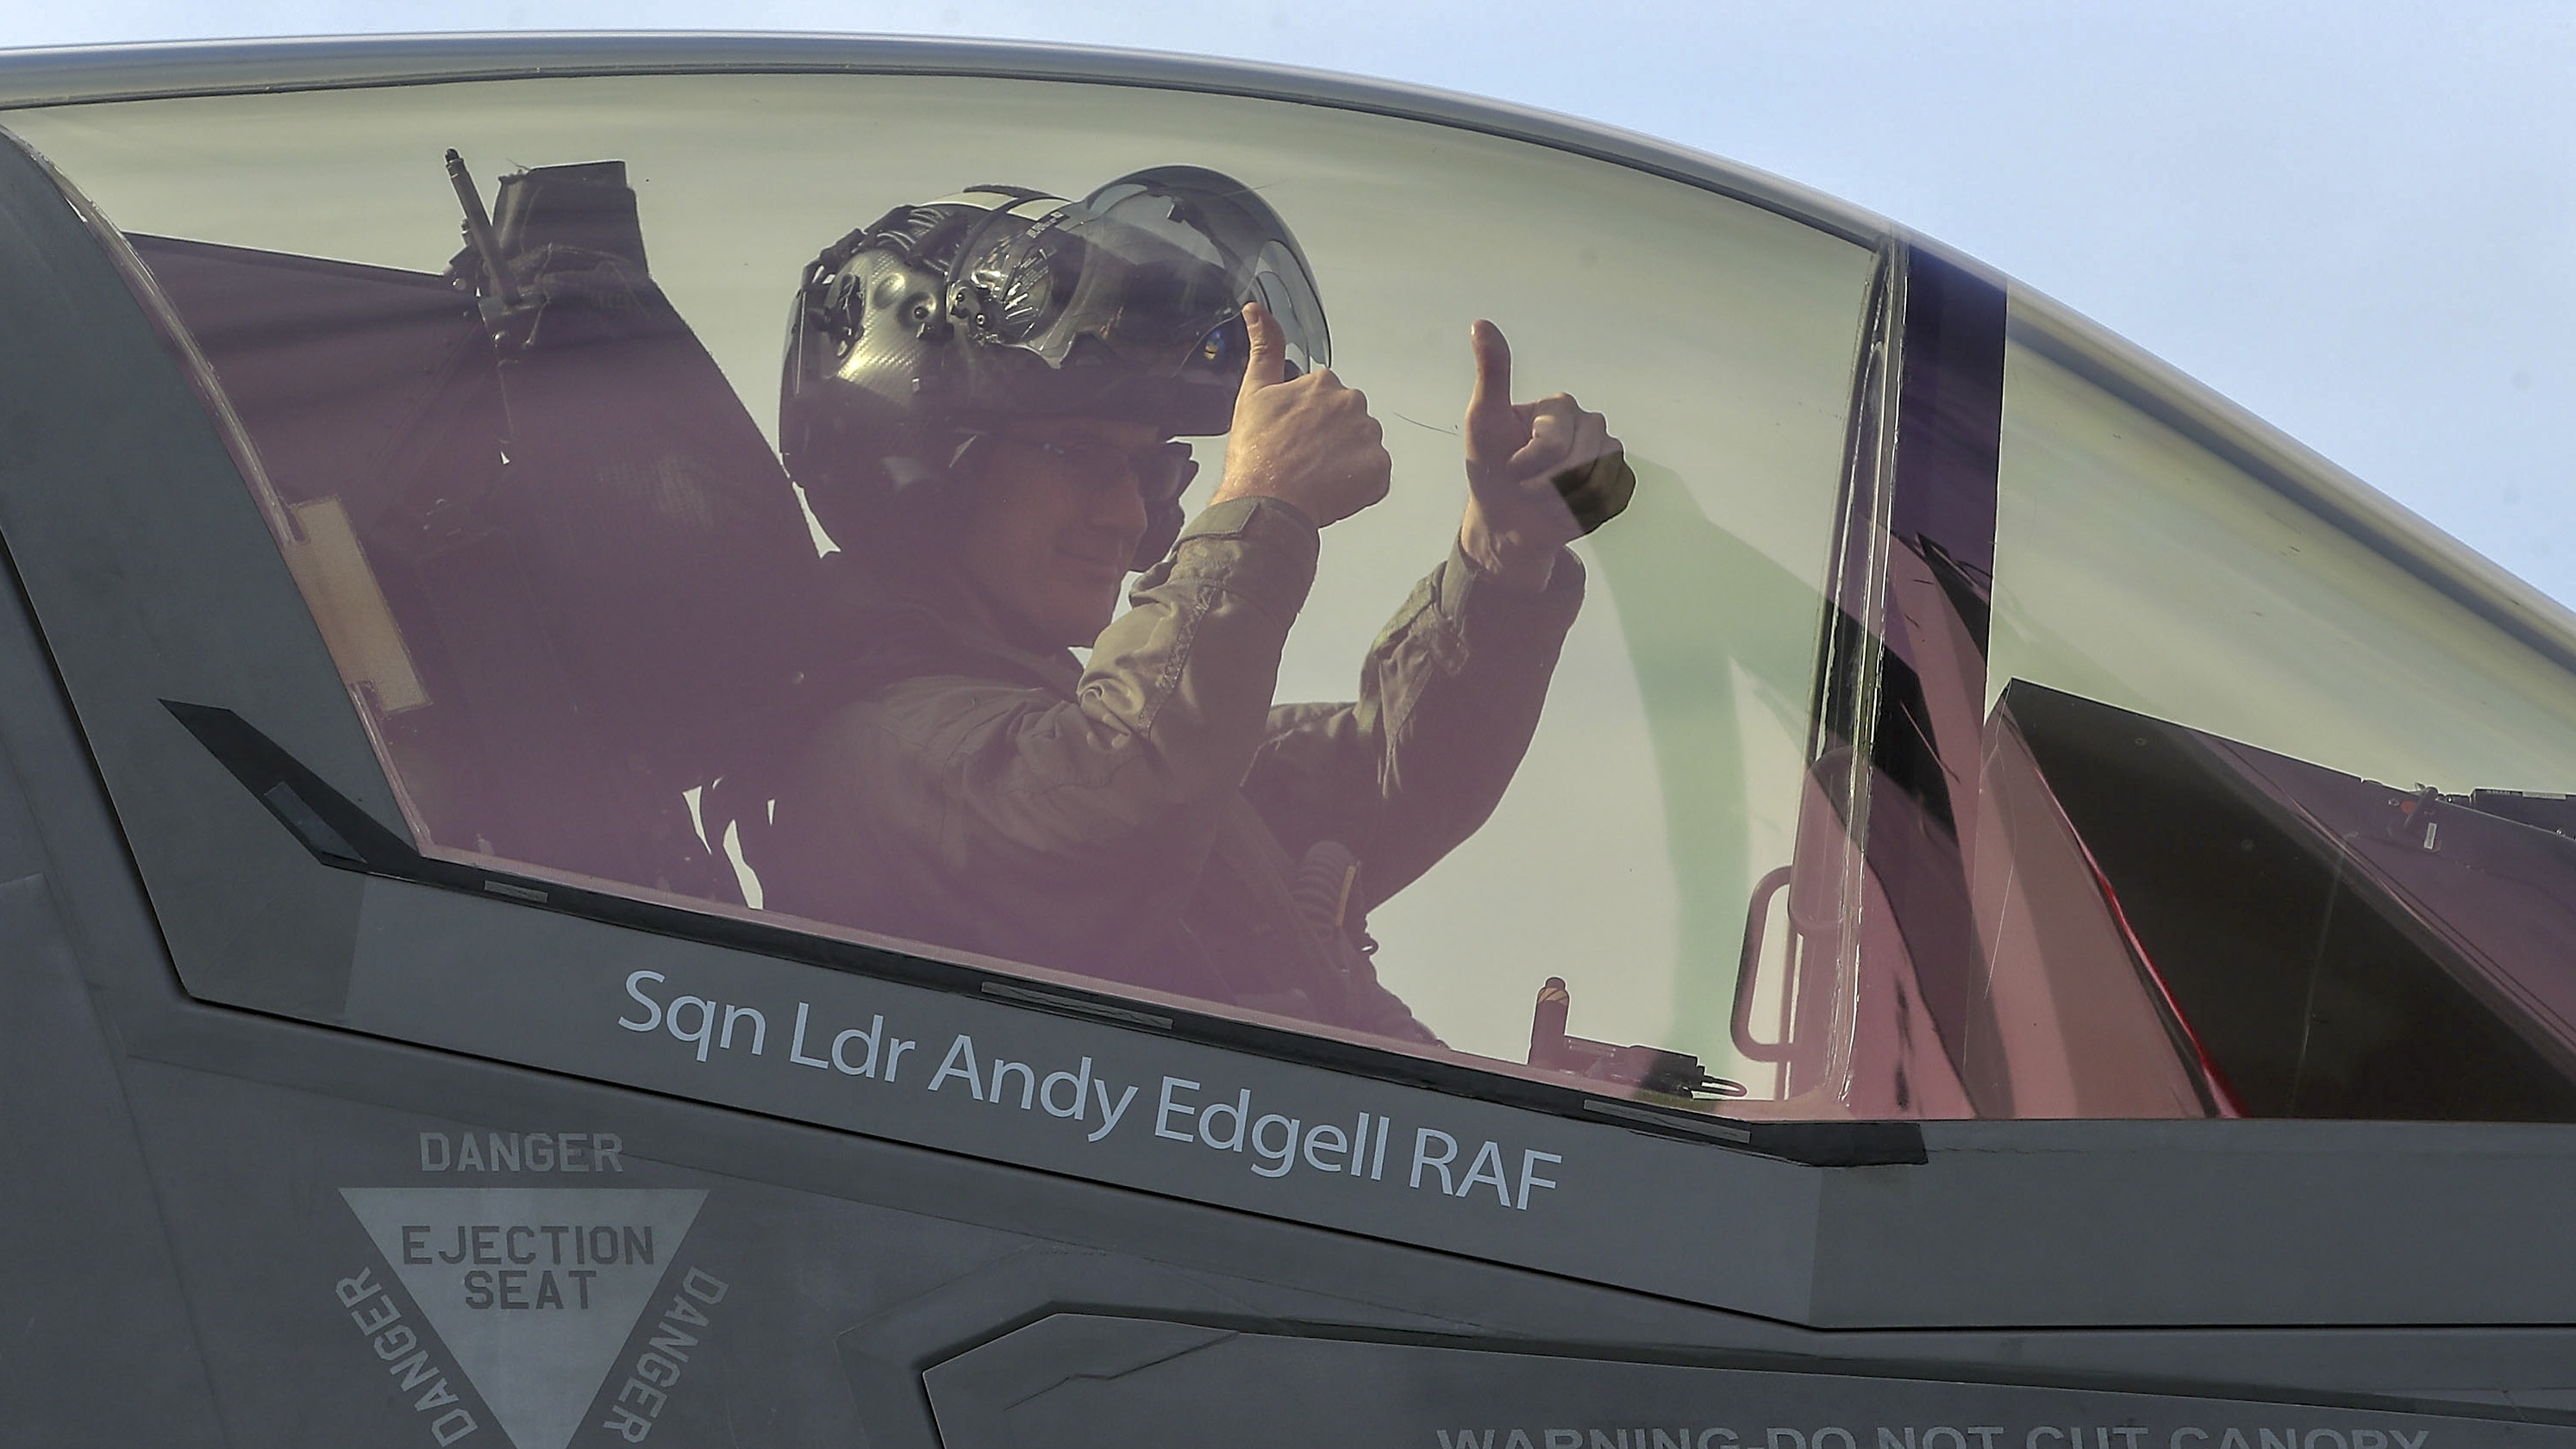 RAF Squadron Leader Andy Edgell sits in the cockpit of a new F35B Lightning fighter jet as he prepares to take off from the HMS Queen Elizabeth as it sails at sea in the Atlantic Ocean off the U.S. mid-Atlantic coast, on September 27, 2018. The carrier is currently participating in flight trials with two new F35-B's and eventually be able to embark up to 24 of the supersonic jets. (Photo by Mark Wilson/Getty Images)